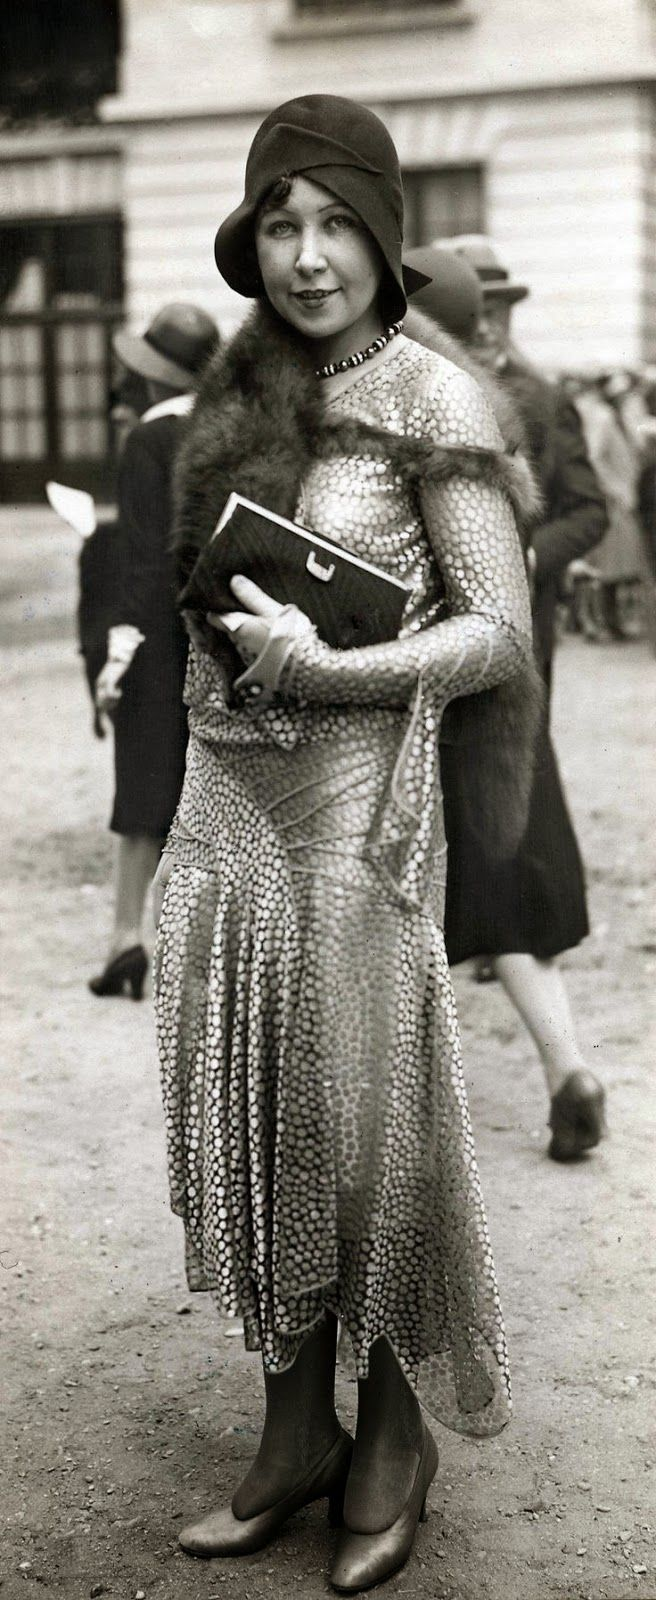 a stylish woman at the longchamp races in paris 1929